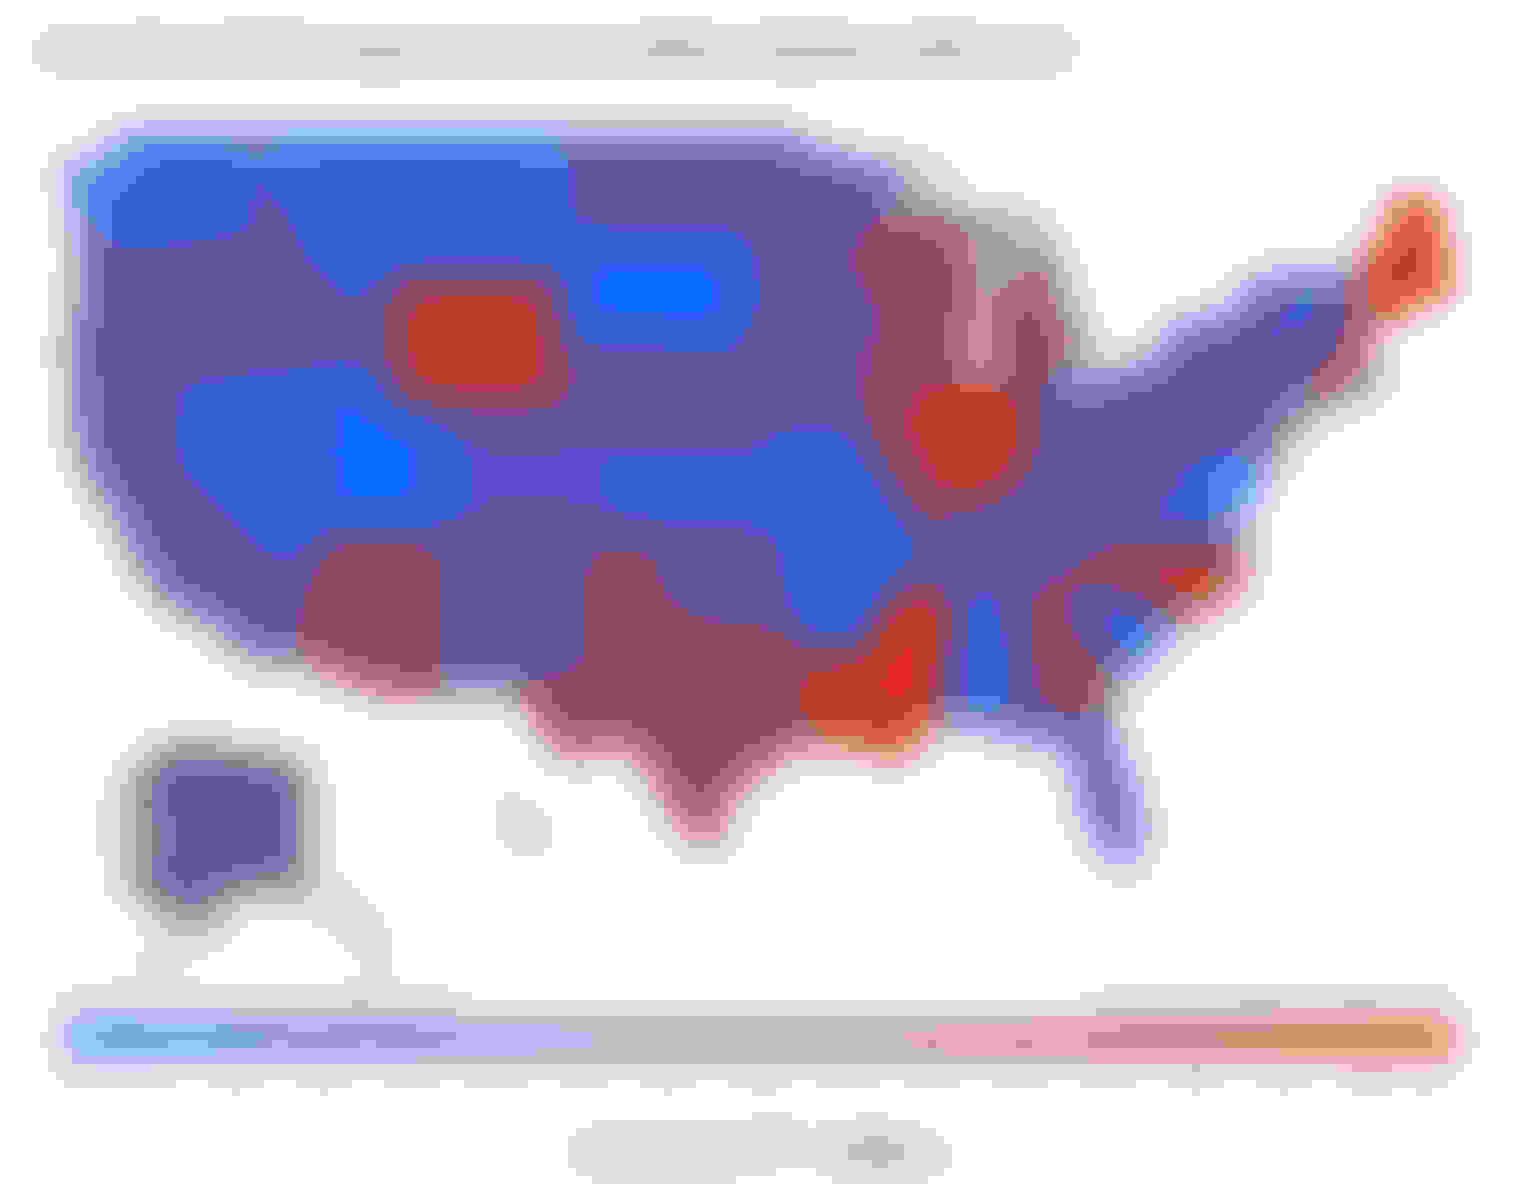 This image shows a map of the U.S. states by medical care-seeking behavior amid the coronavirus pandemic.